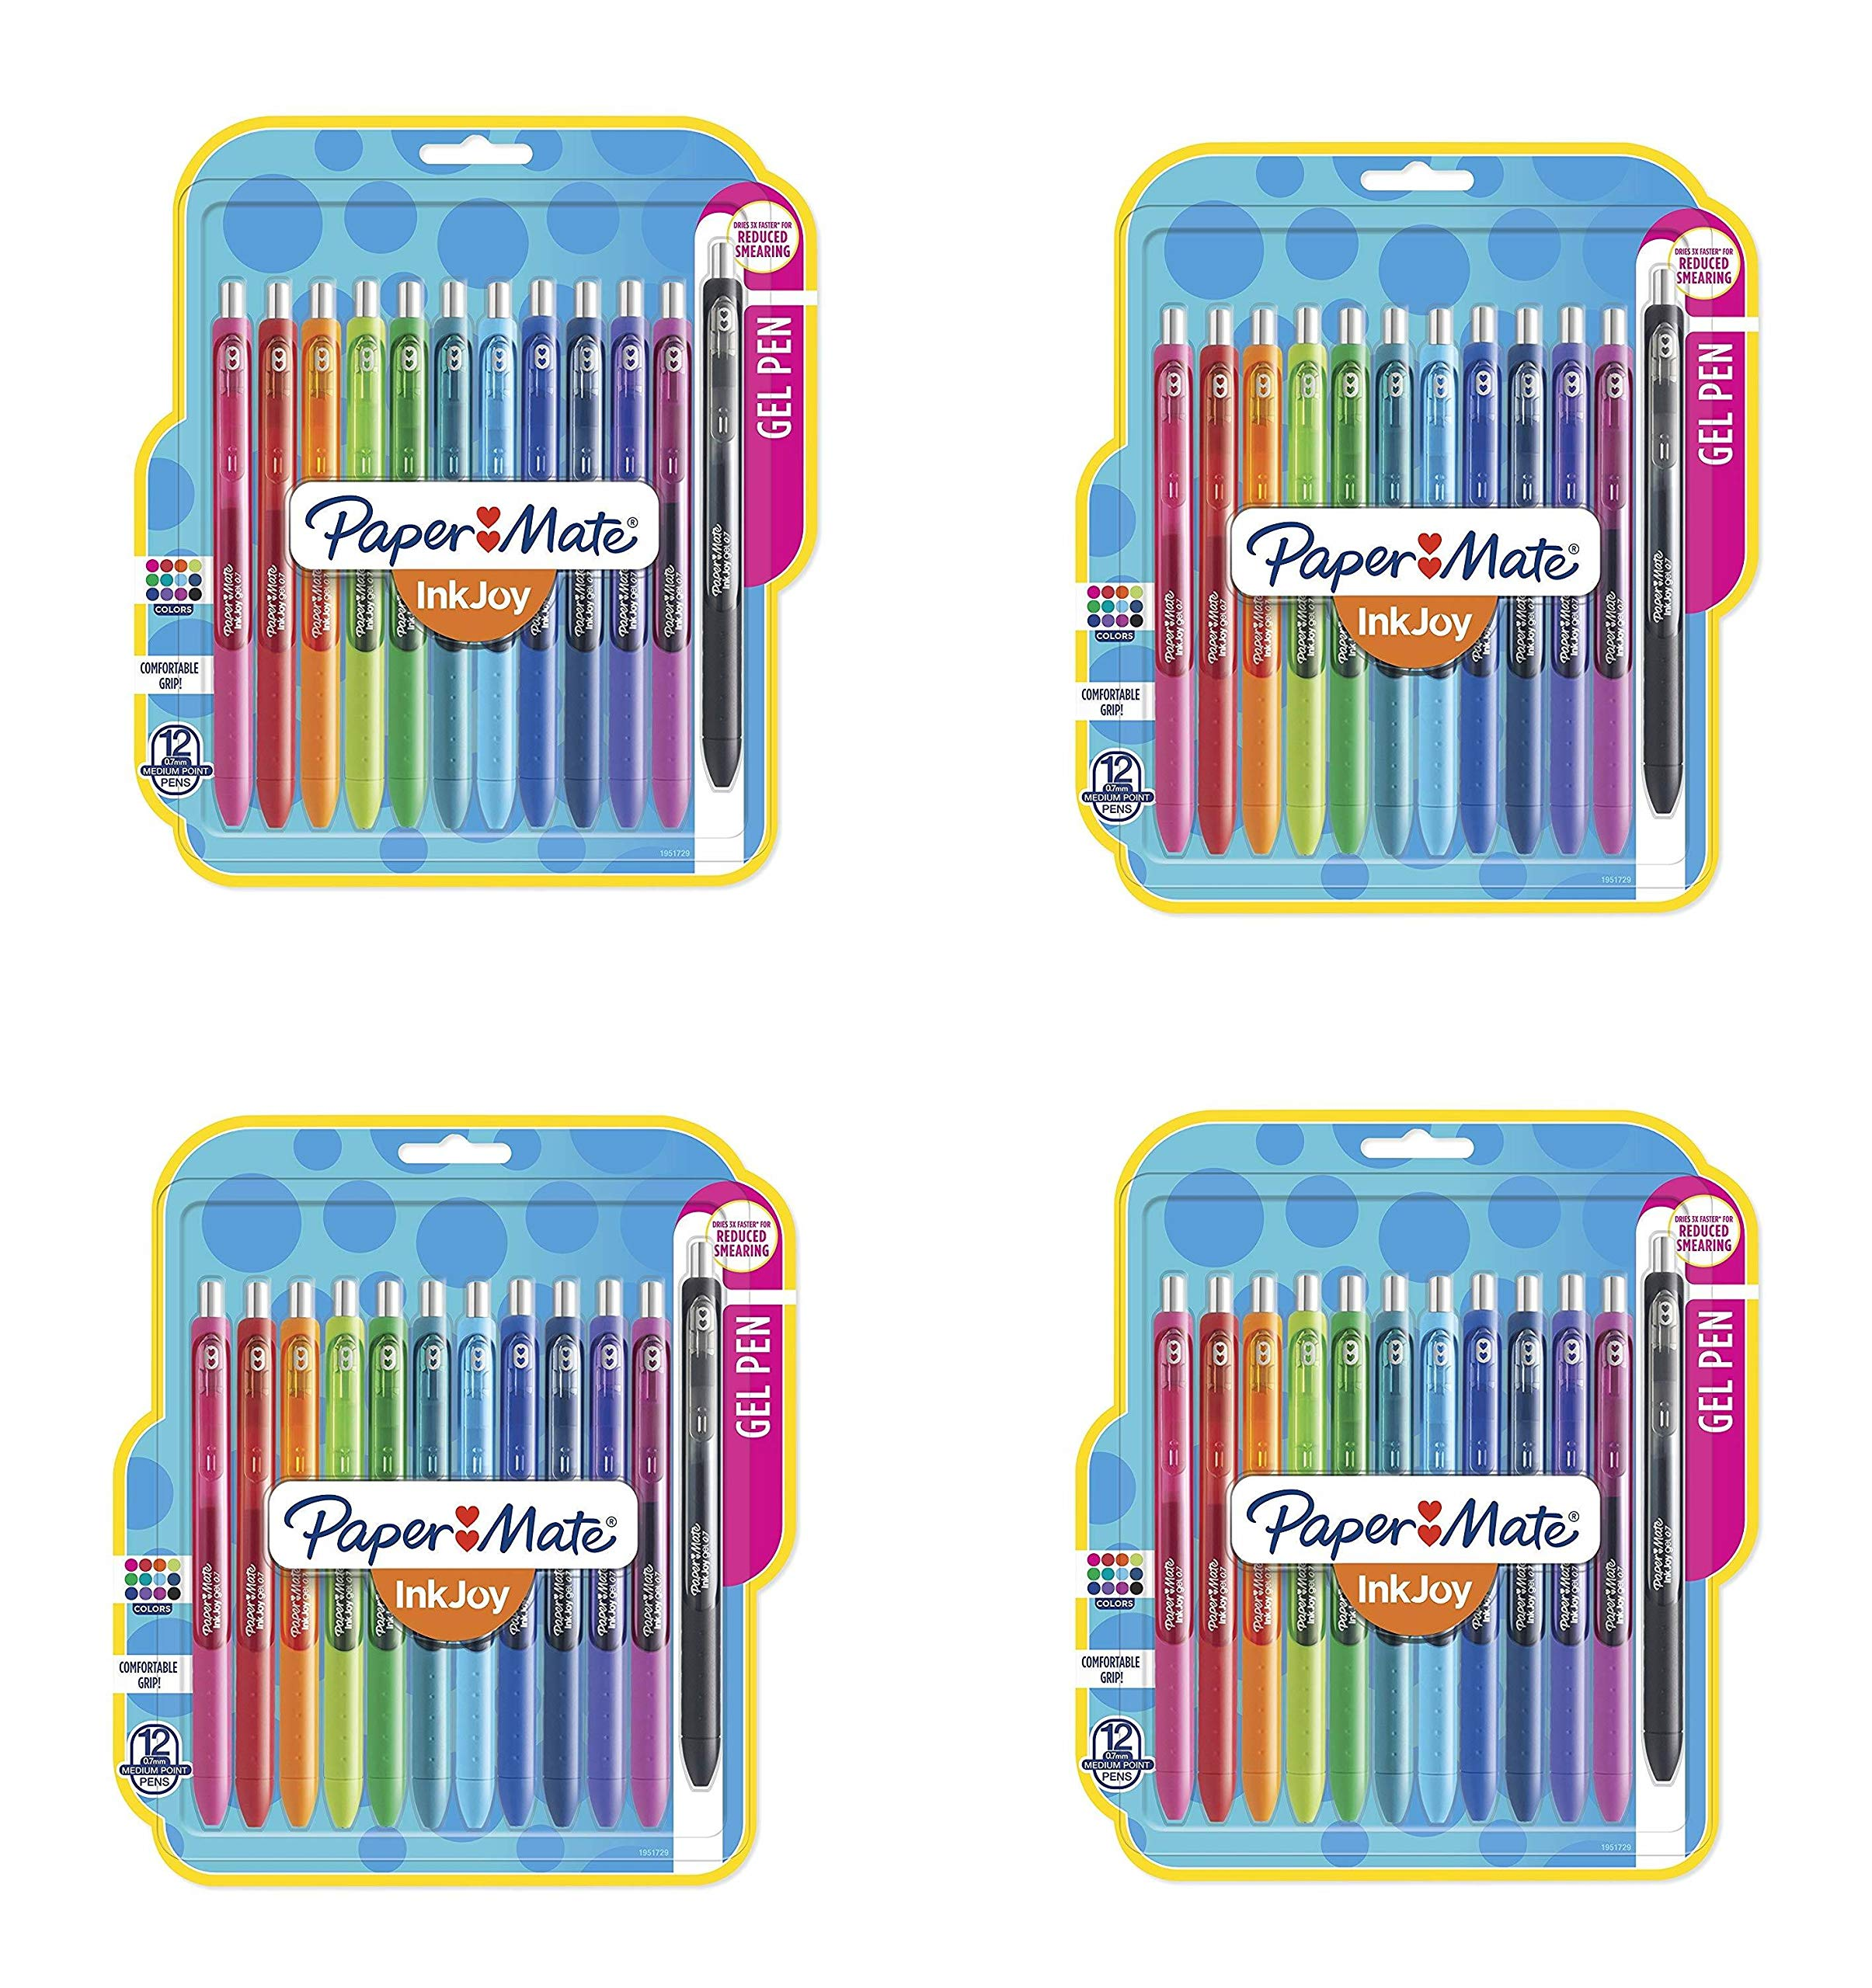 InkJoy Gel Pens, Medium Point, Assorted Colors, 12 Count